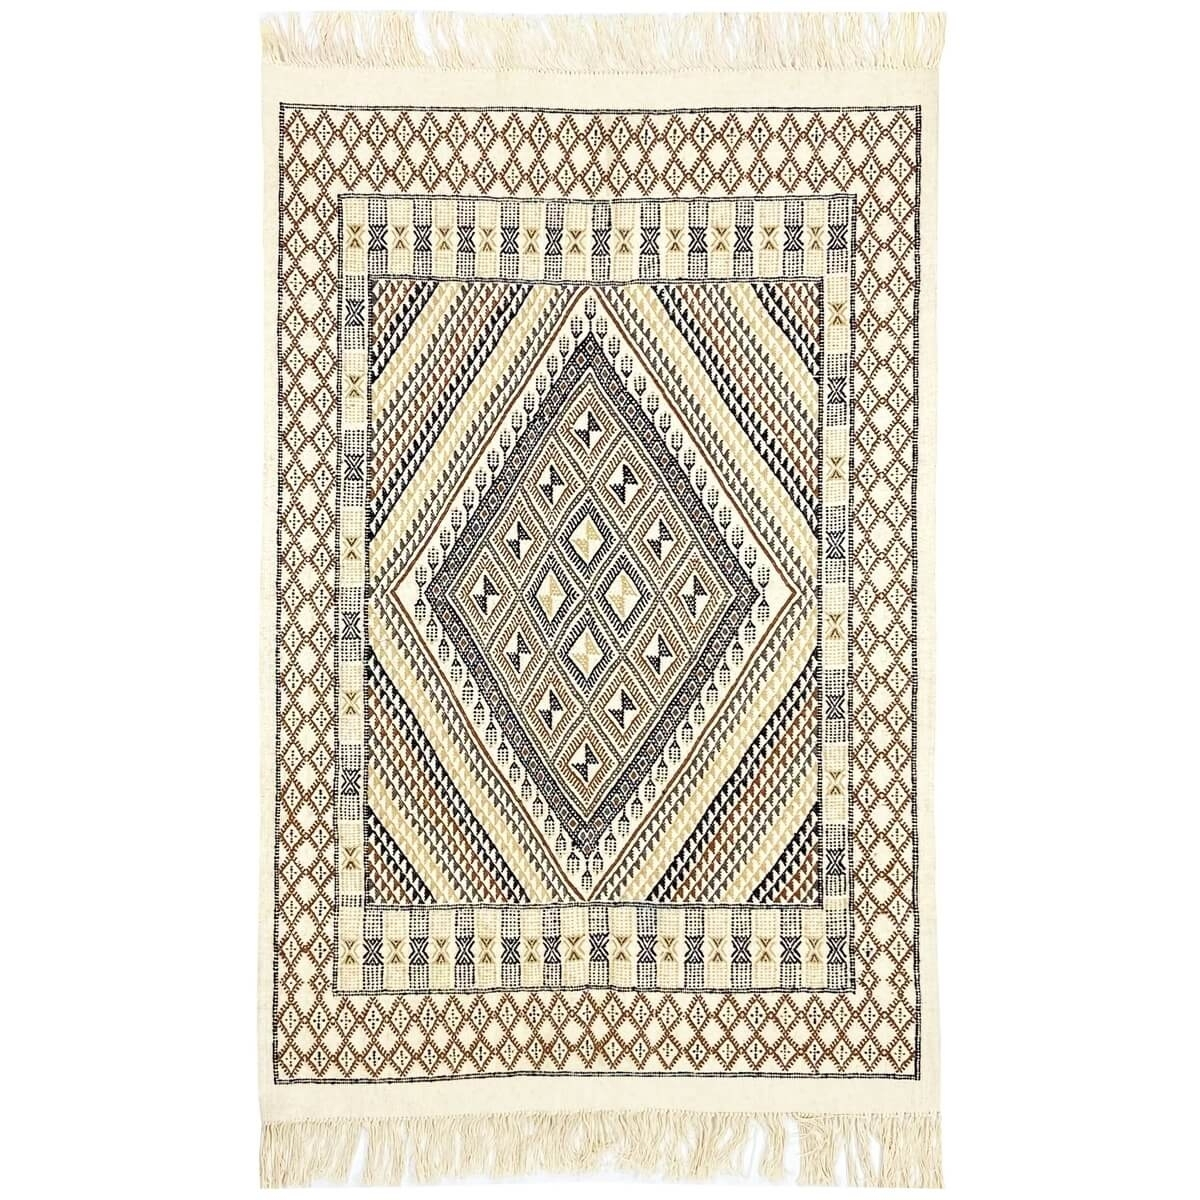 Berber carpet Rug Margoum Homssi 124x204 White/Brown (Handmade, Wool, Tunisia) Tunisian margoum rug from the city of Kairouan. R